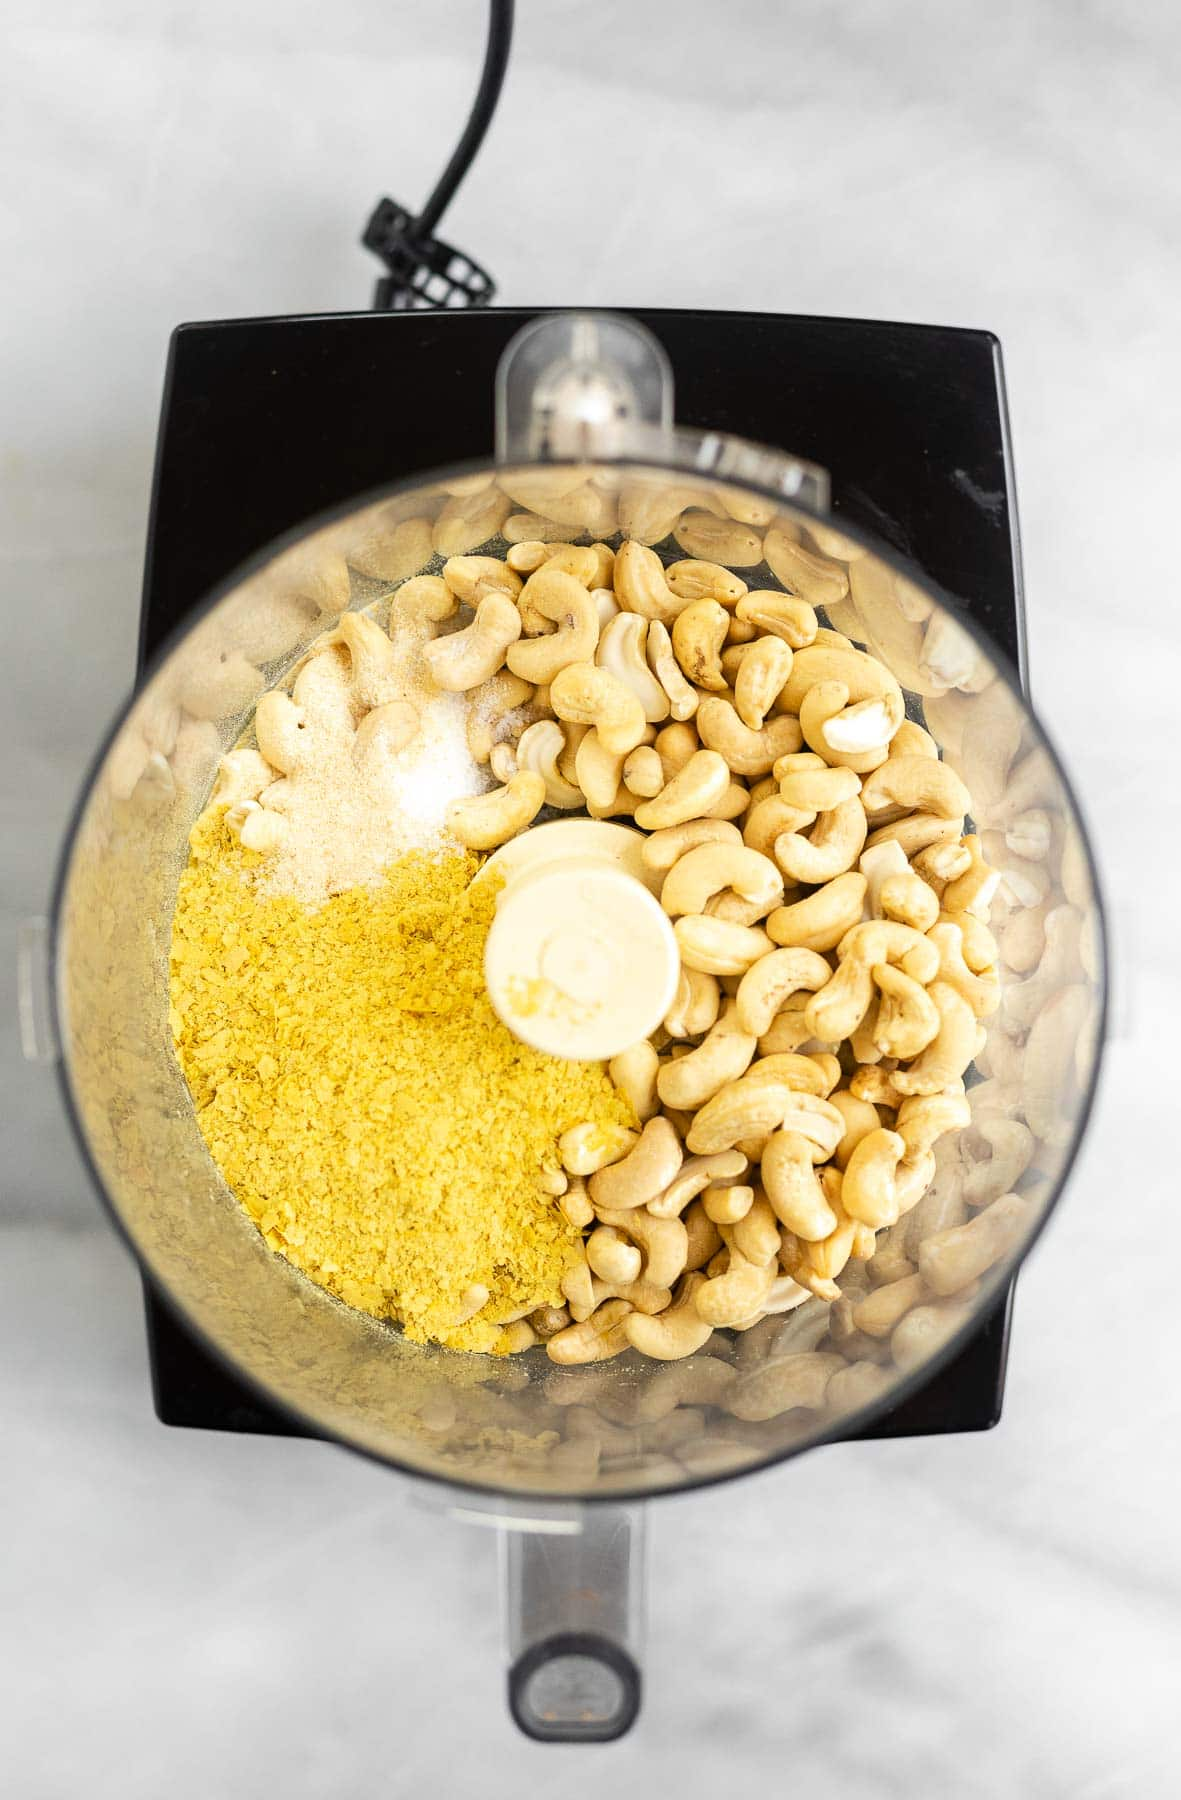 Ingredients in a food processor.